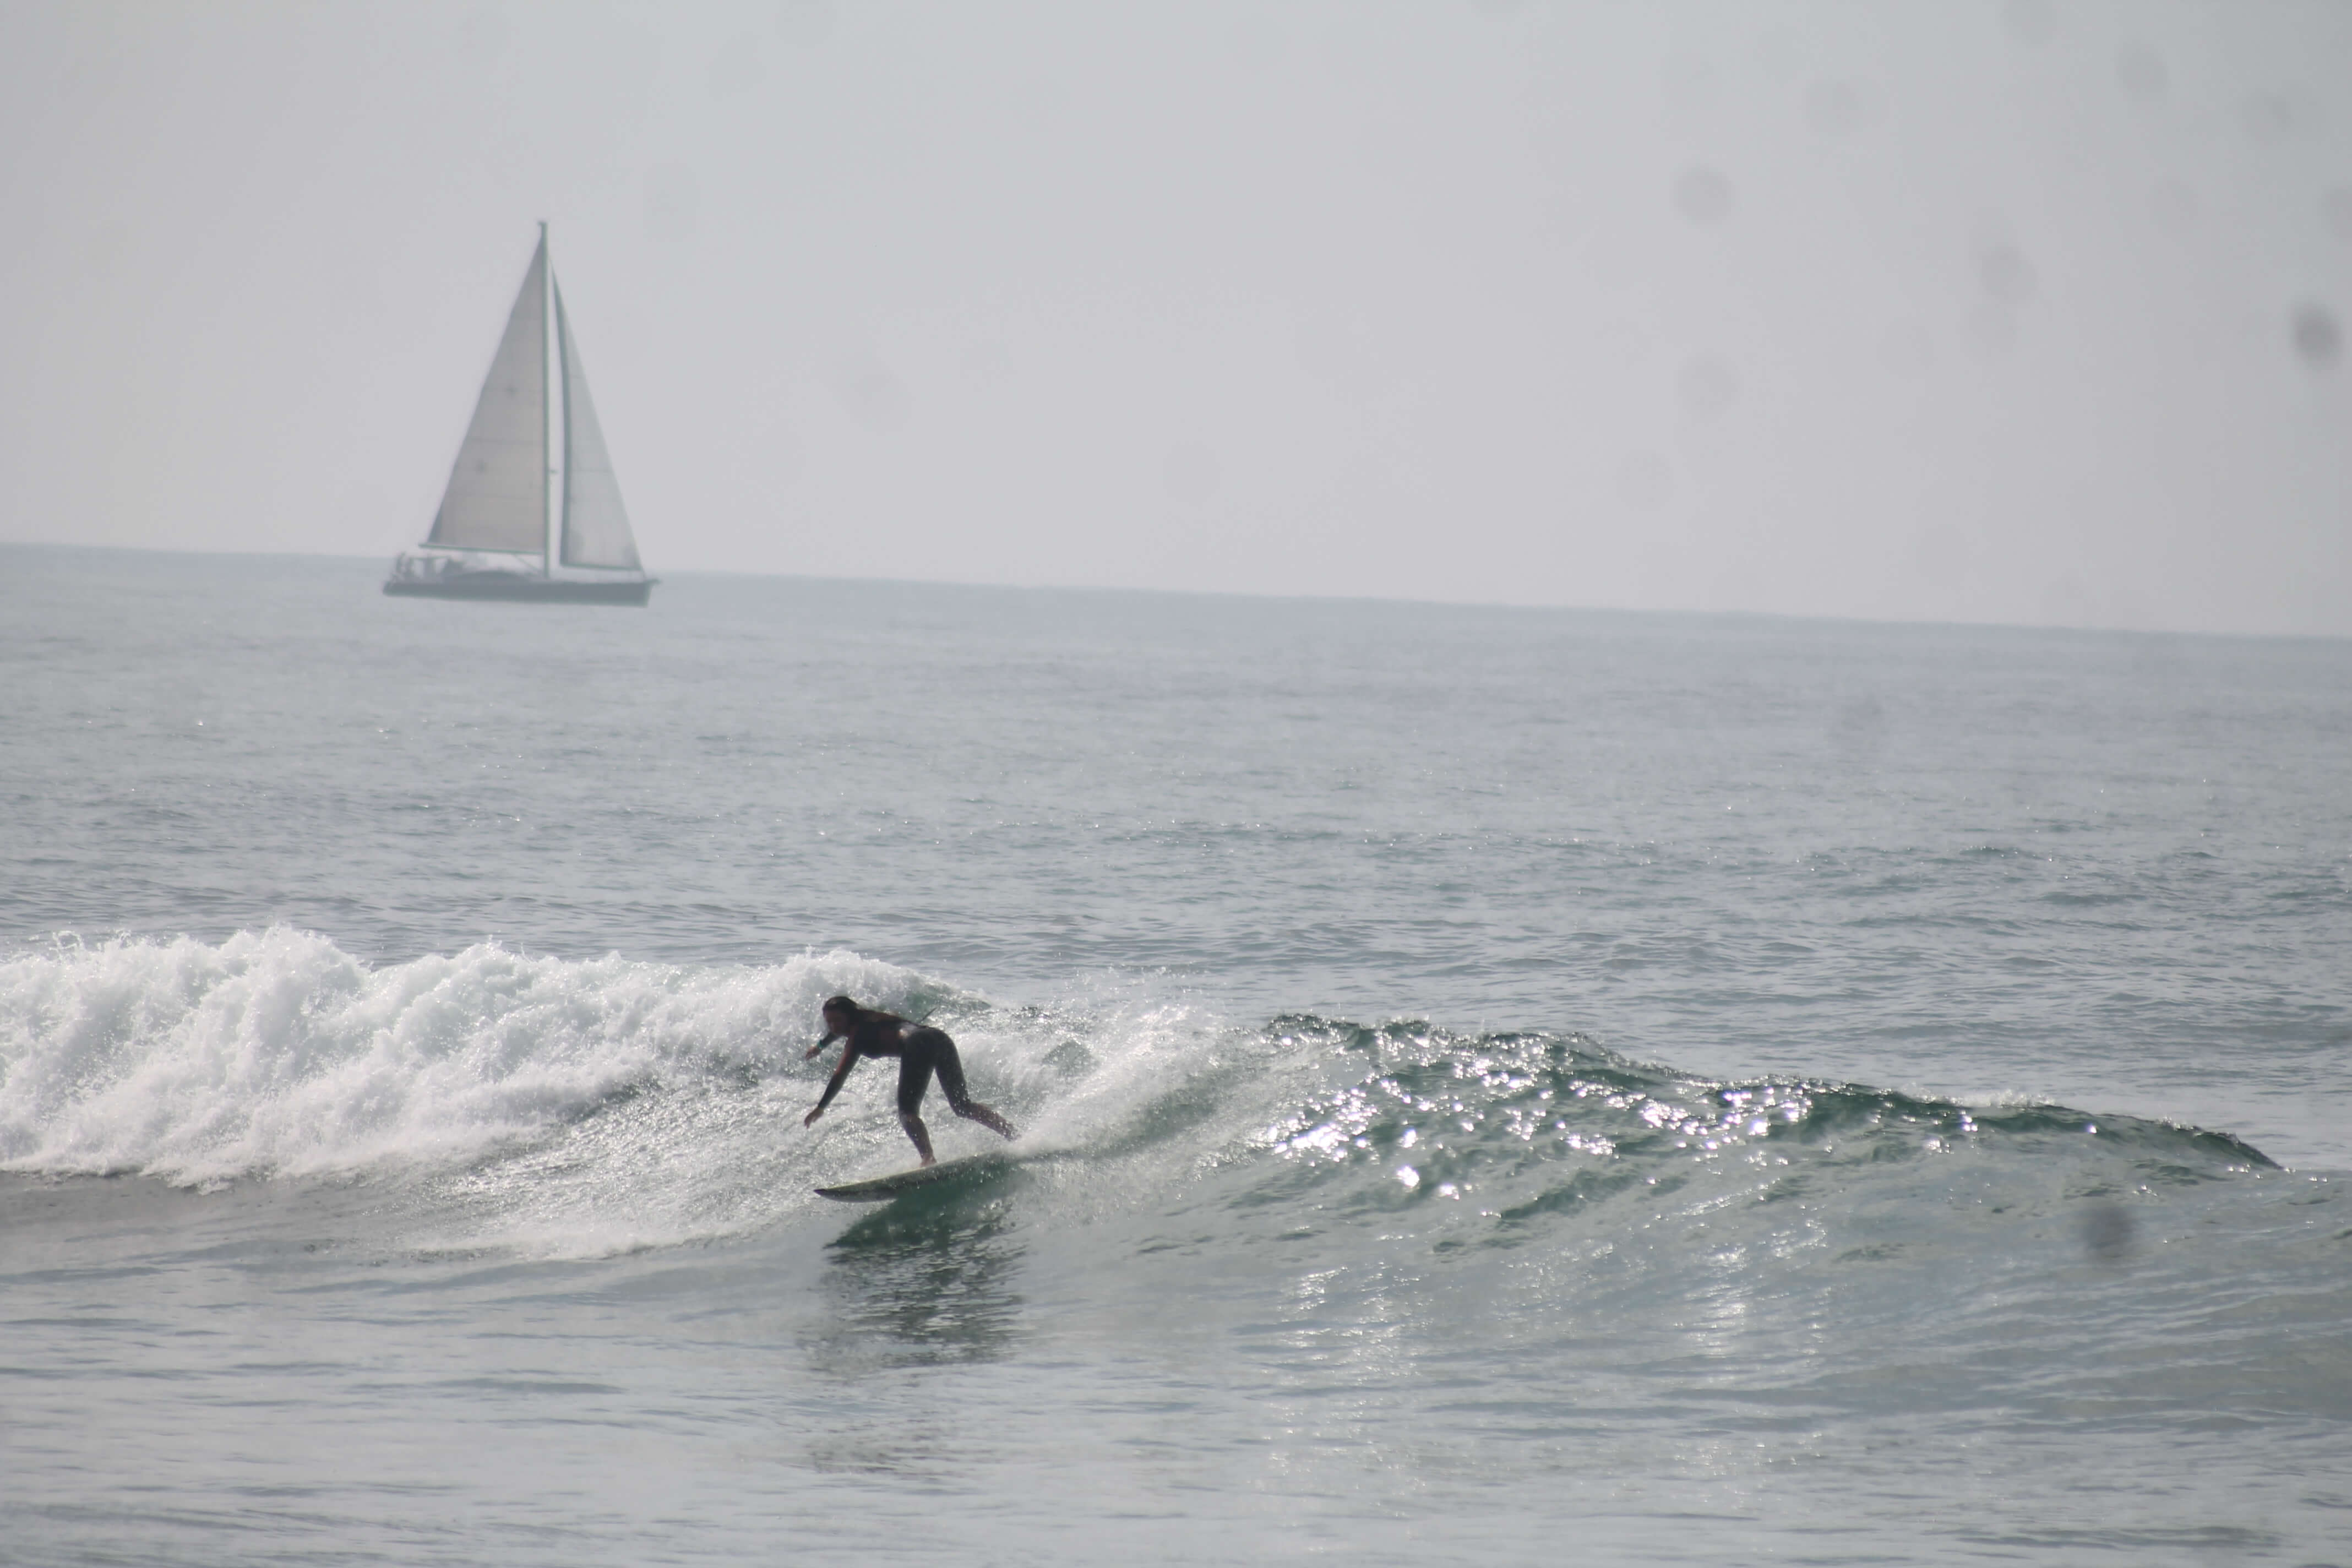 Le Culs Nus, Guide to Surfing Hossegor, France